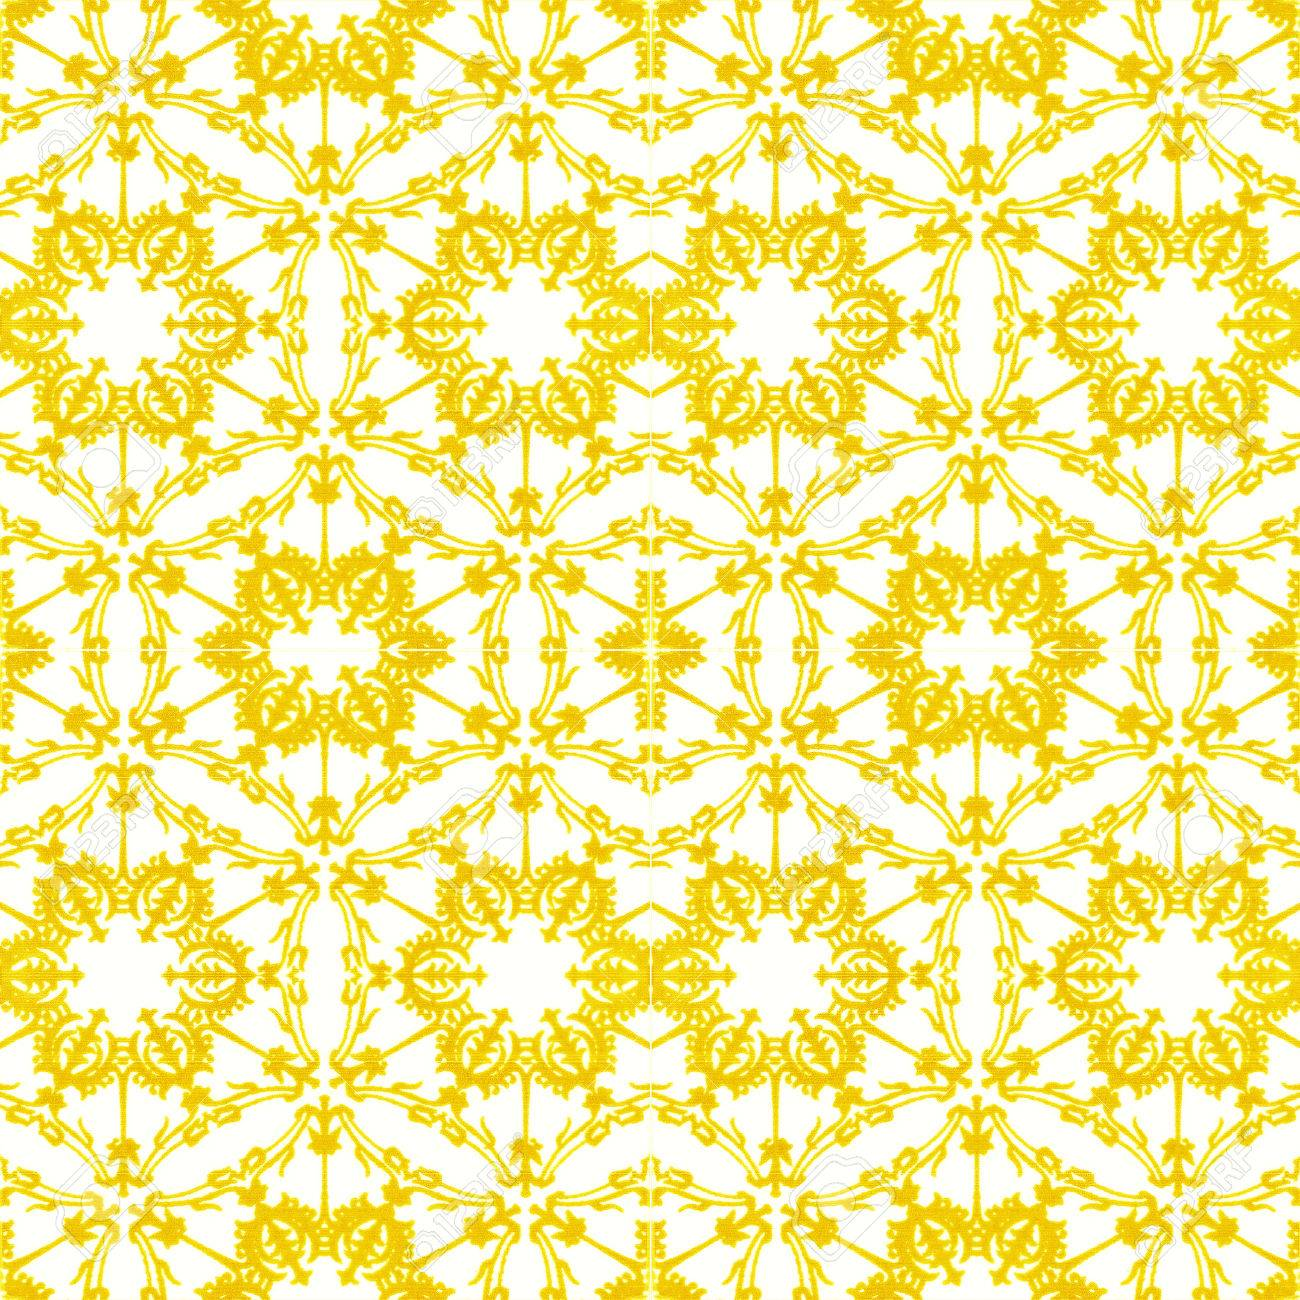 Old Ceramic Tiles Patterns Stock Photo Picture And Royalty Free